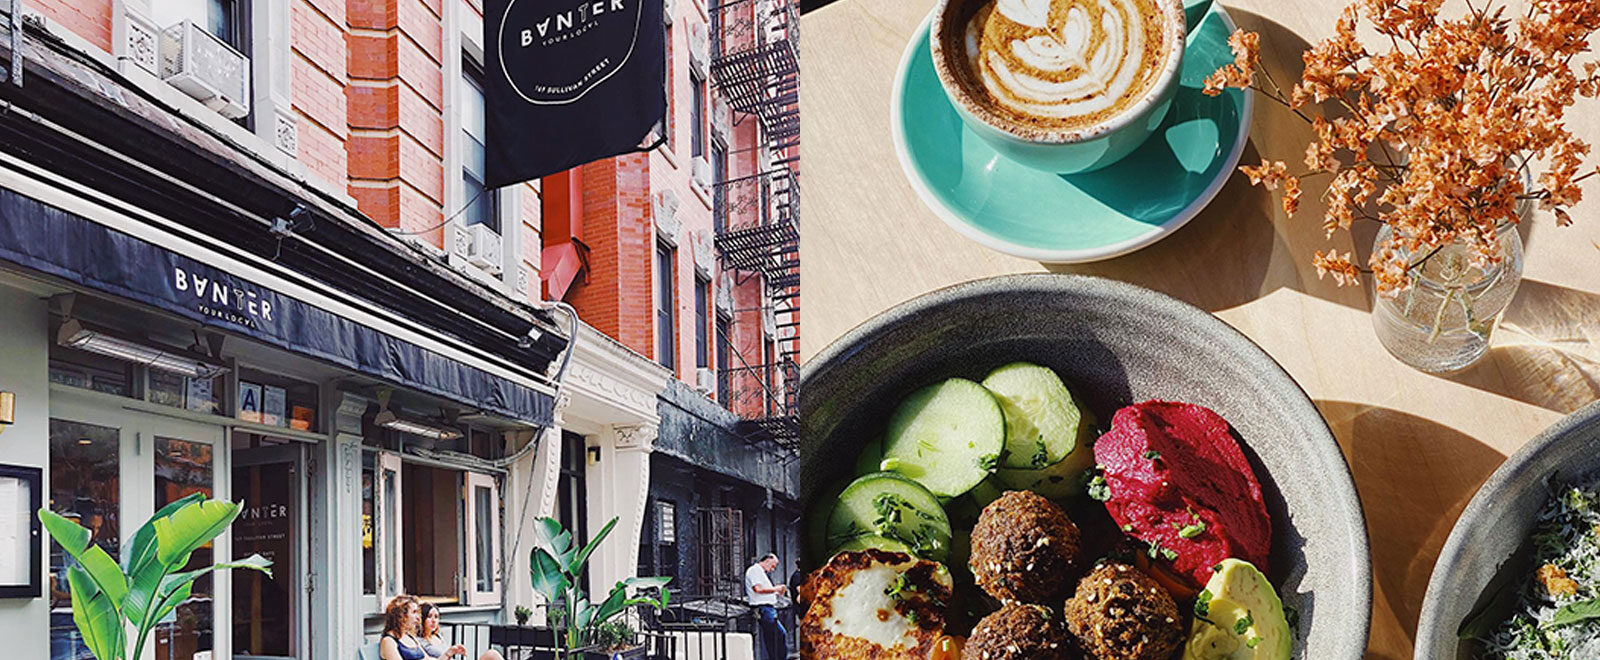 Australian cafe new york downtown banter two hands ruby's sonnyboy good thanks food dining coffee